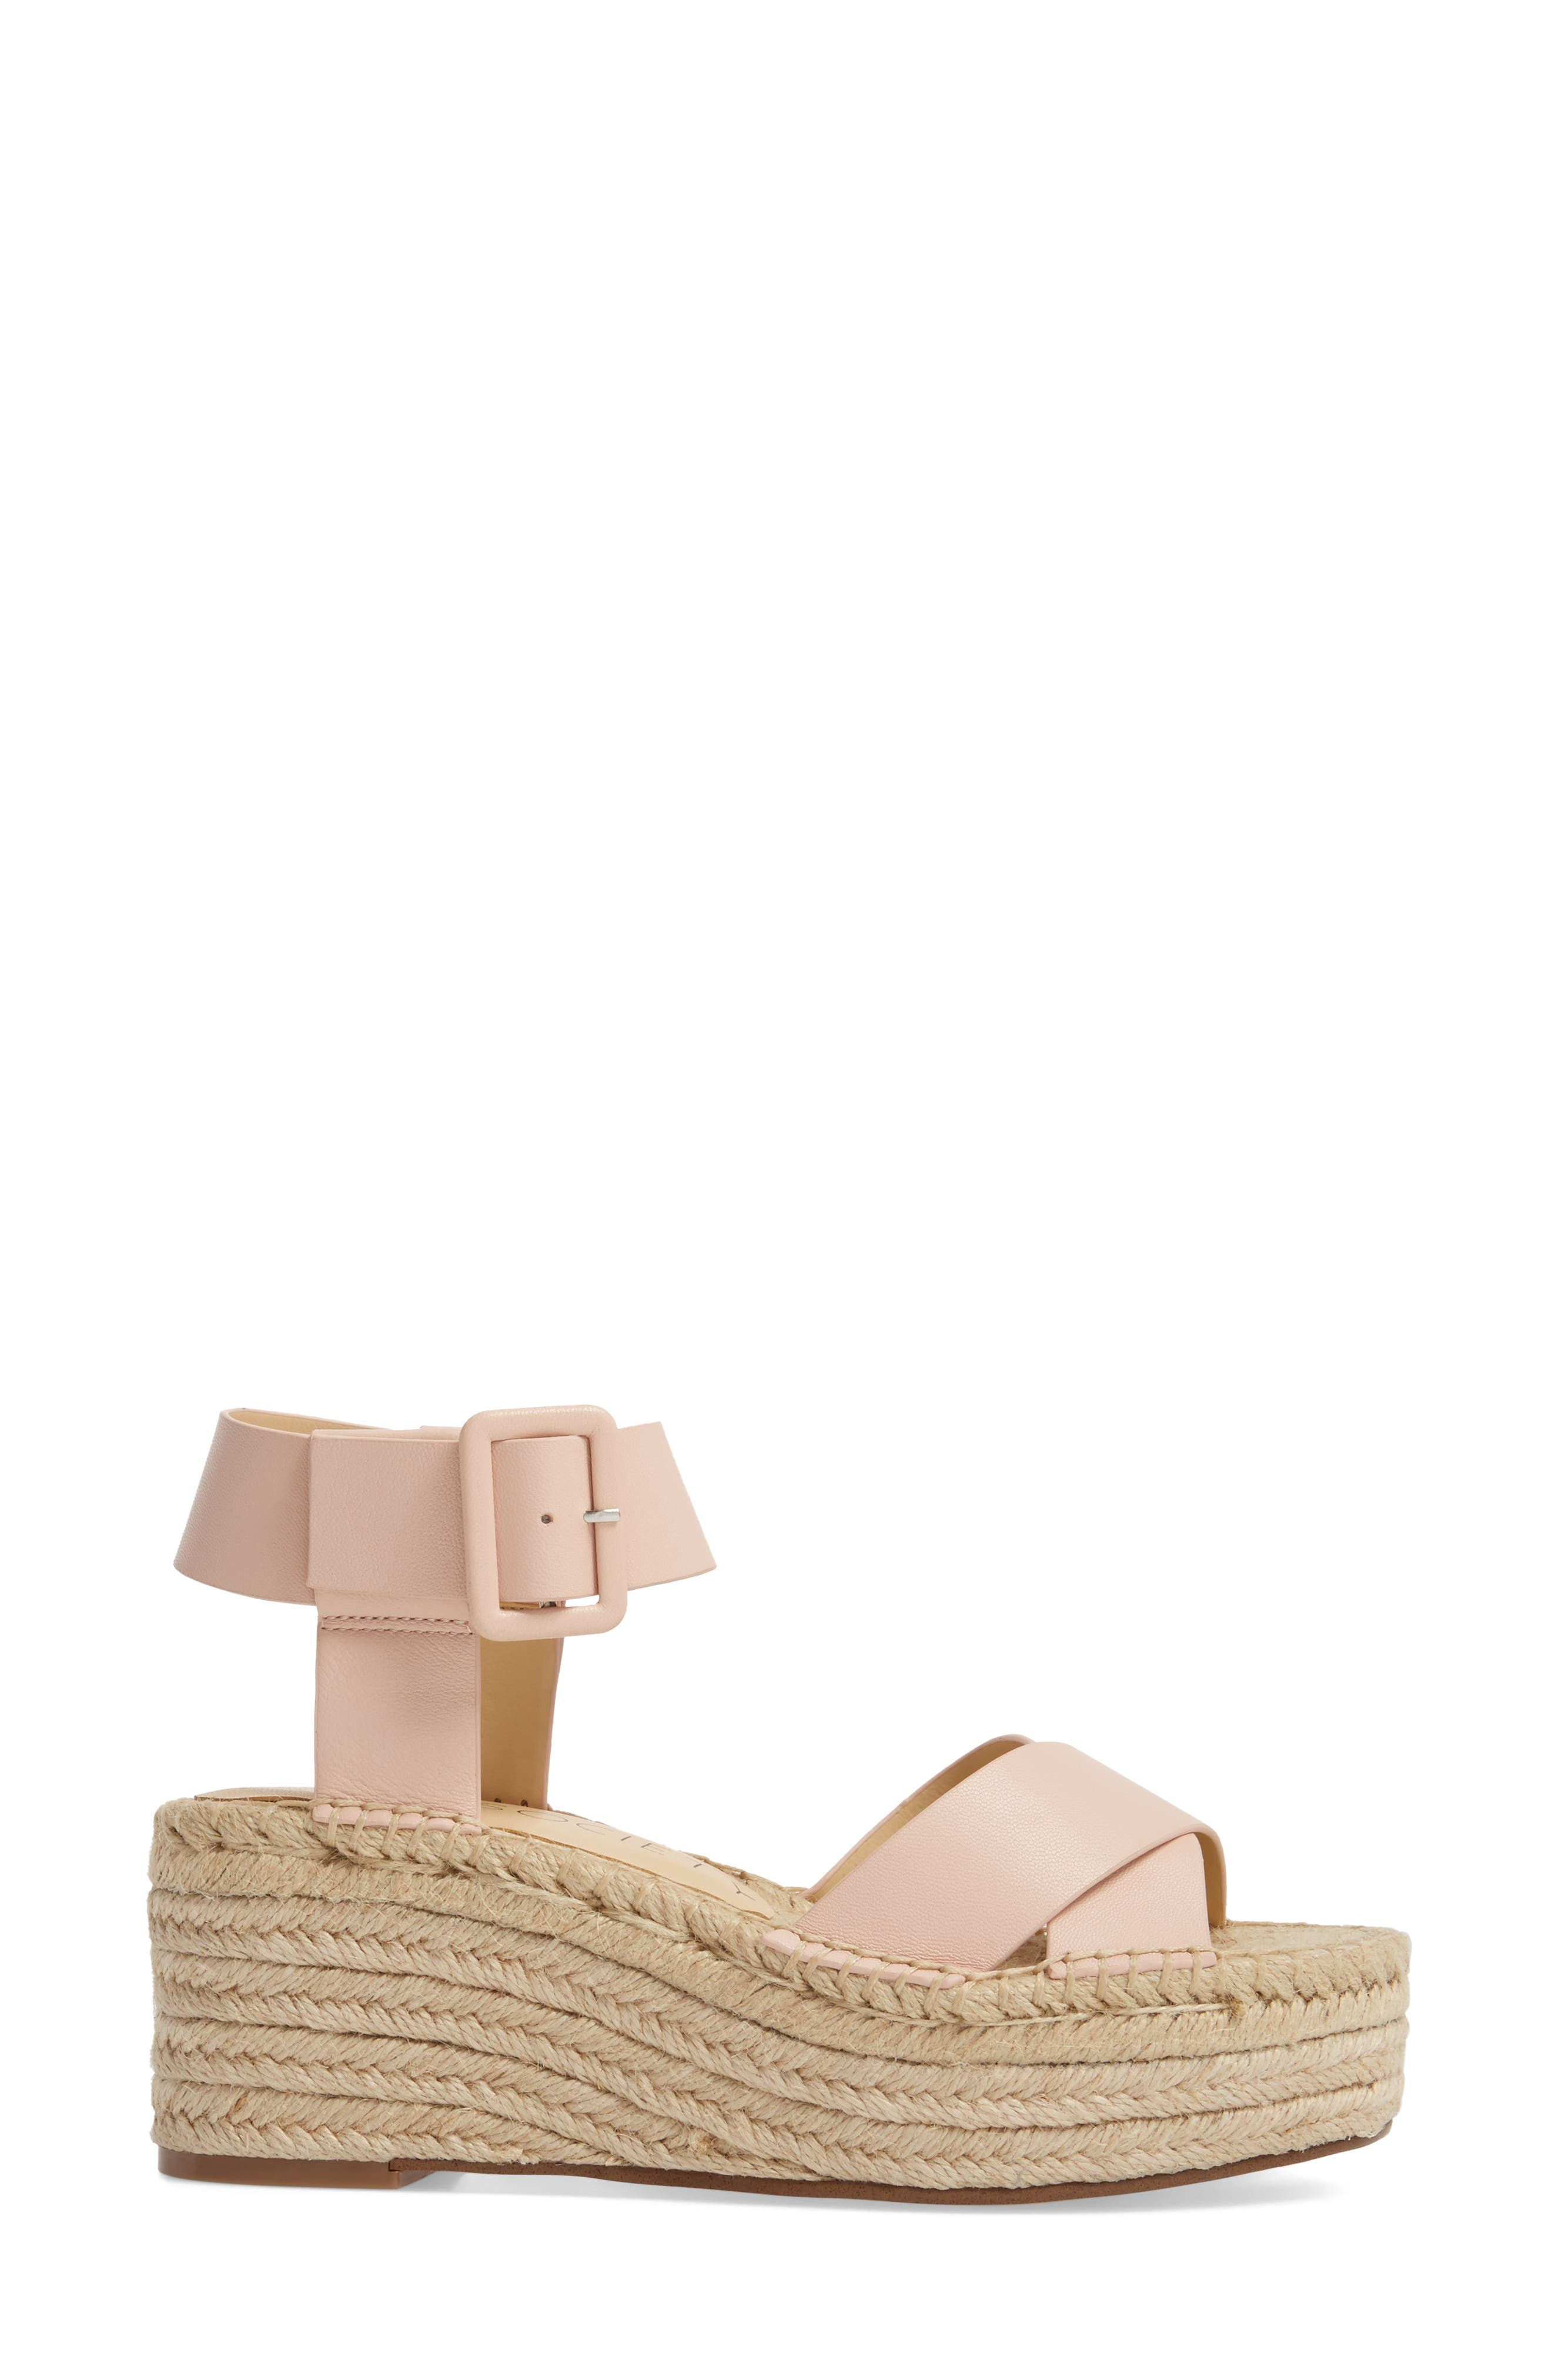 'Audrina' Platform Espadrille Sandal,                             Alternate thumbnail 3, color,                             Rose Blush